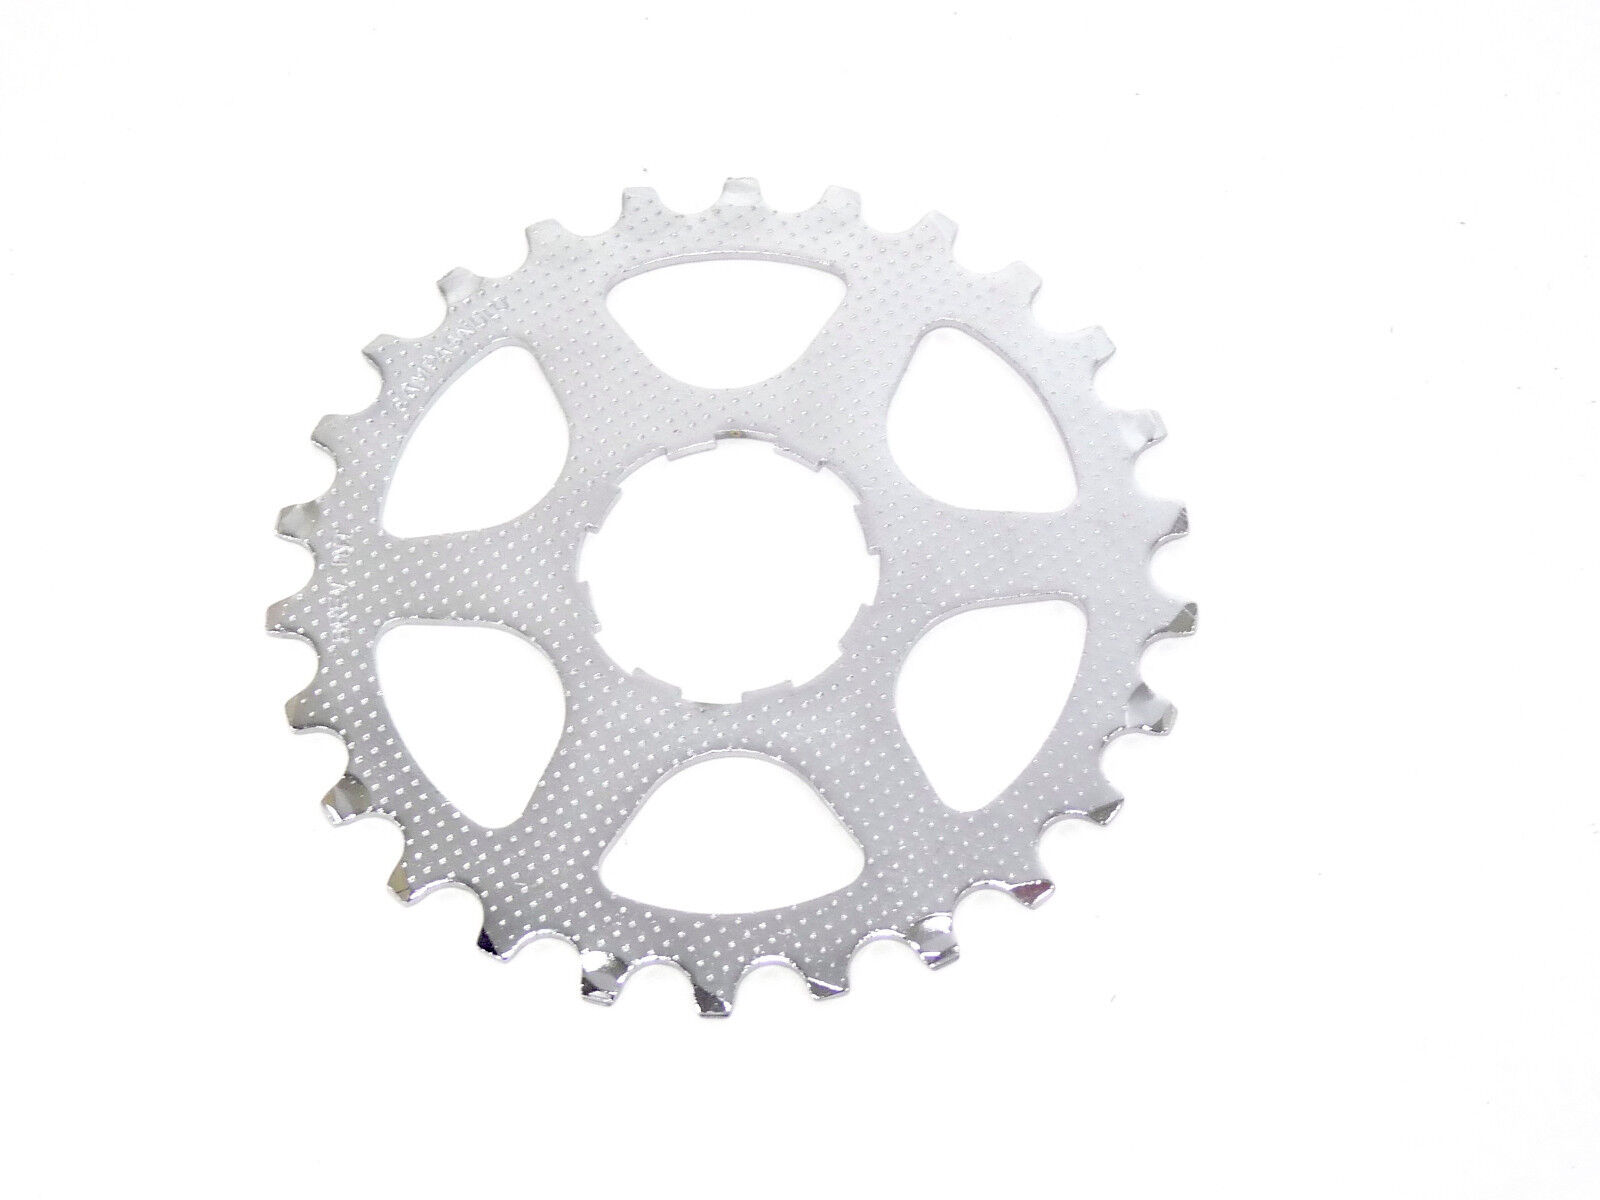 Campagnolo cassette cog 26 tooth Vintage road Mountain Bike 26t 8 SPD MTB NOS